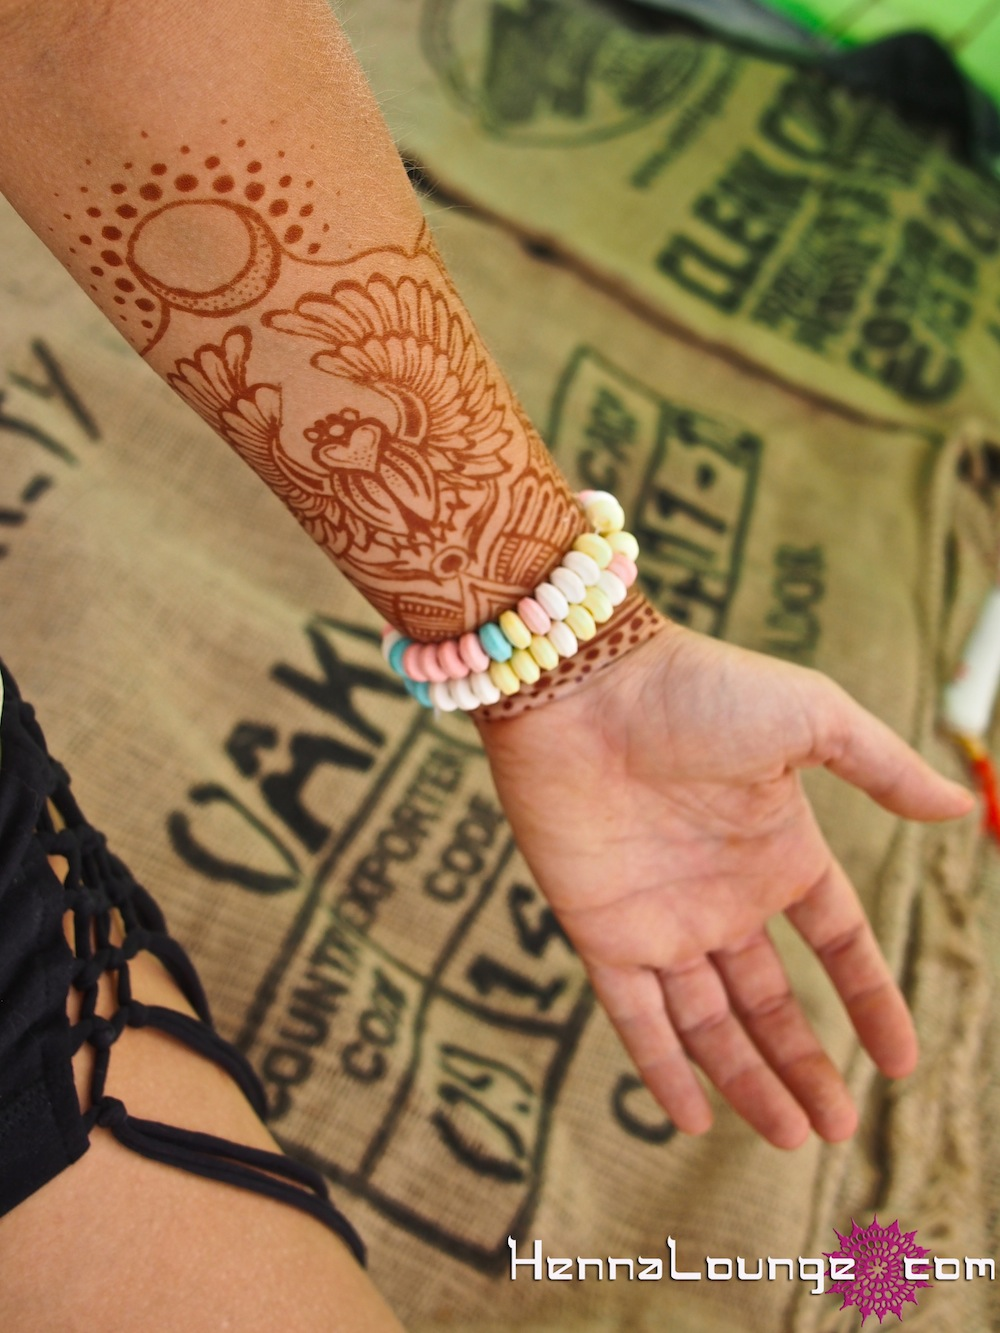 Egyptian themed henna for Burning Man 2012